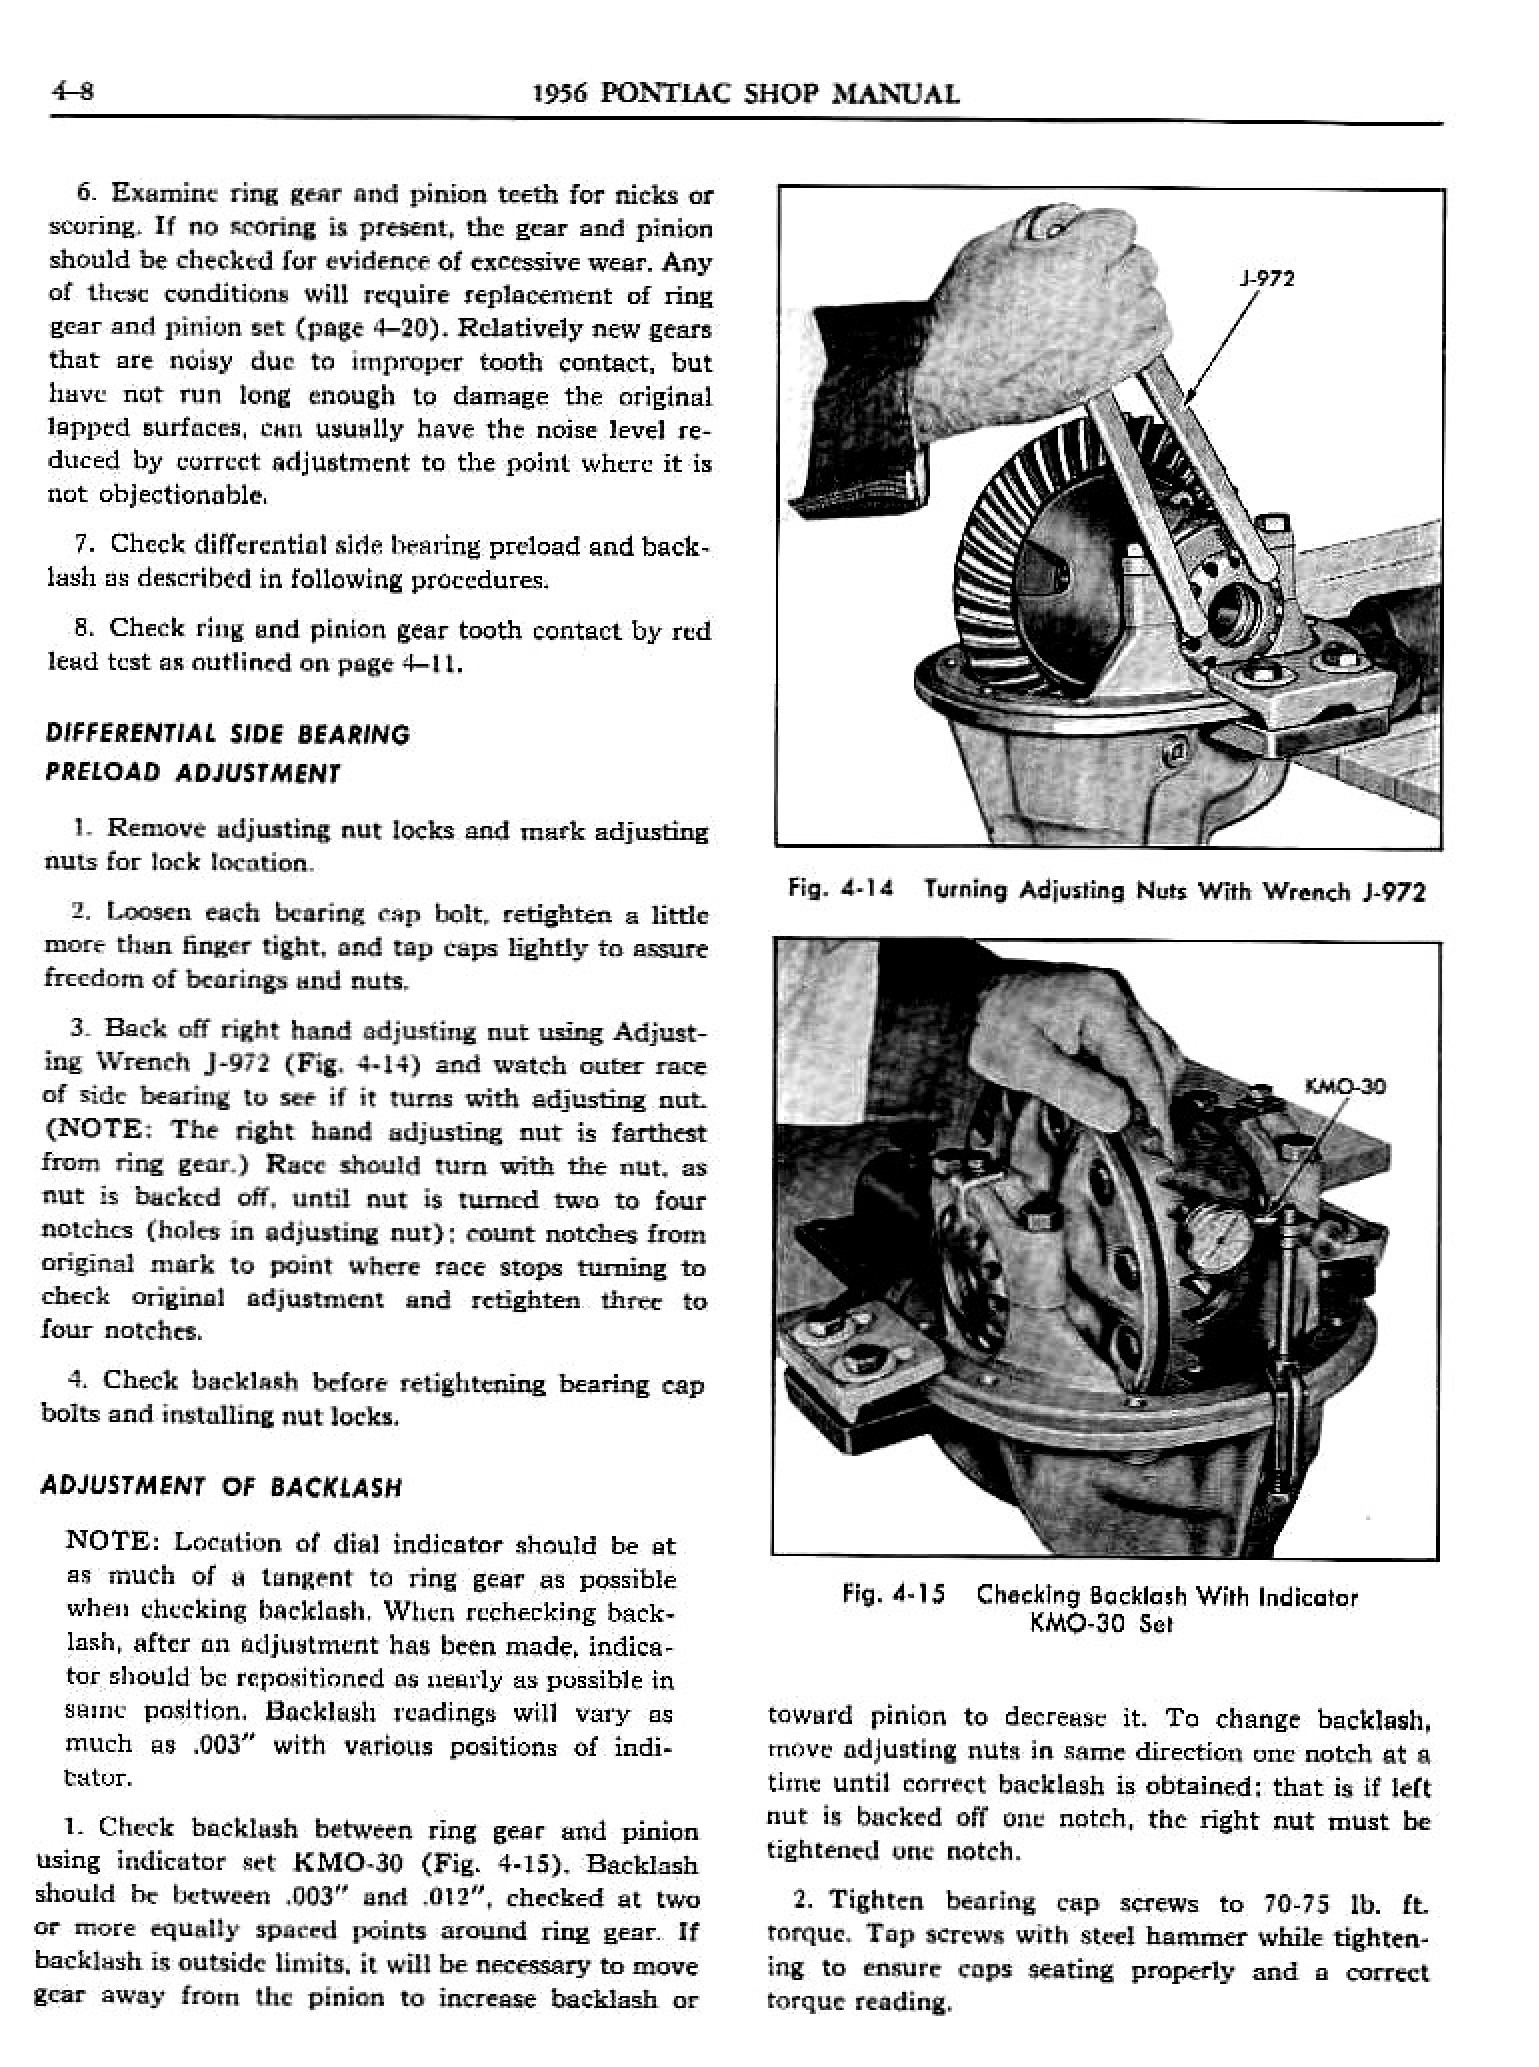 1956 Pontiac Shop Manual- Rear Suspension Page 8 of 33